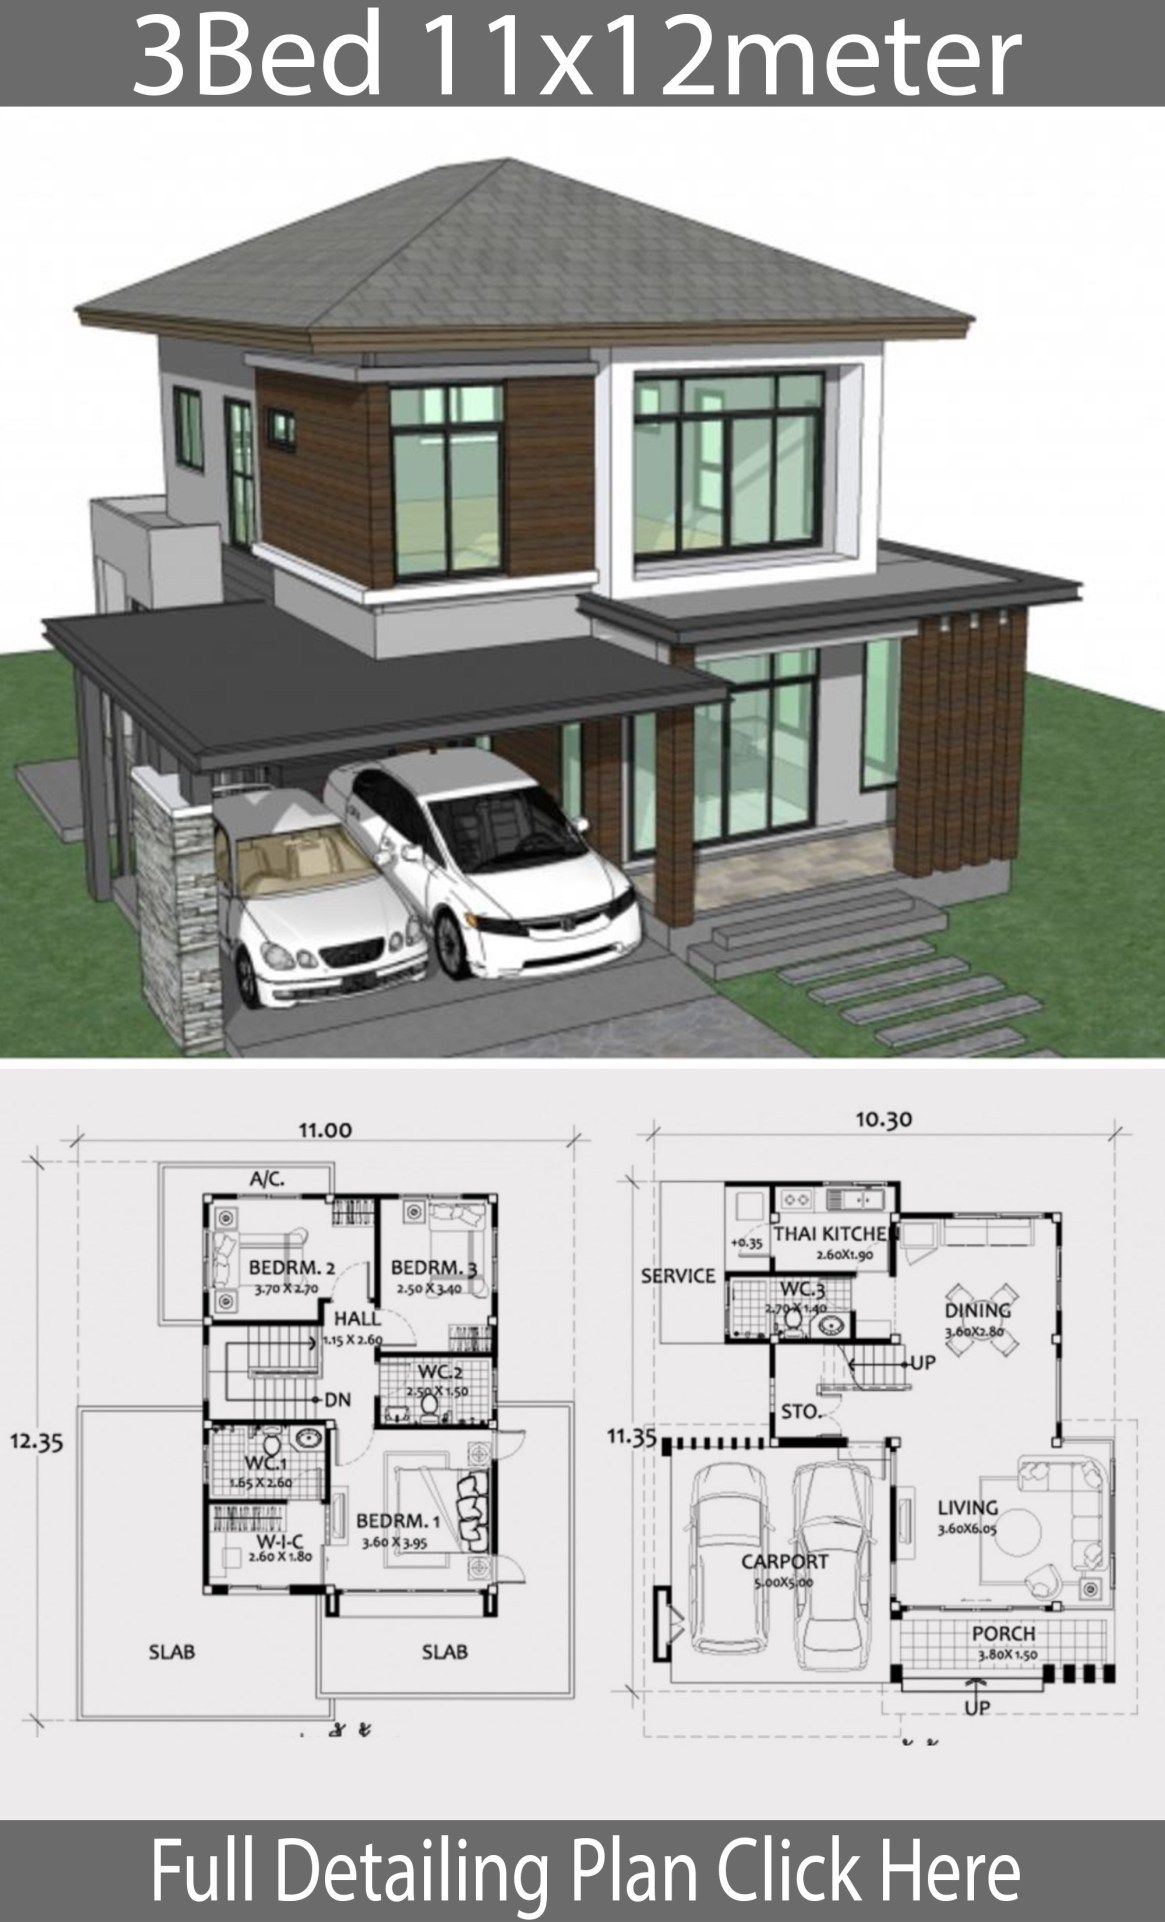 Home Design Plan 11x12m With 3 Bedrooms Home Design With Plansearch Home Design Plan Modern House Design Modern House Plans